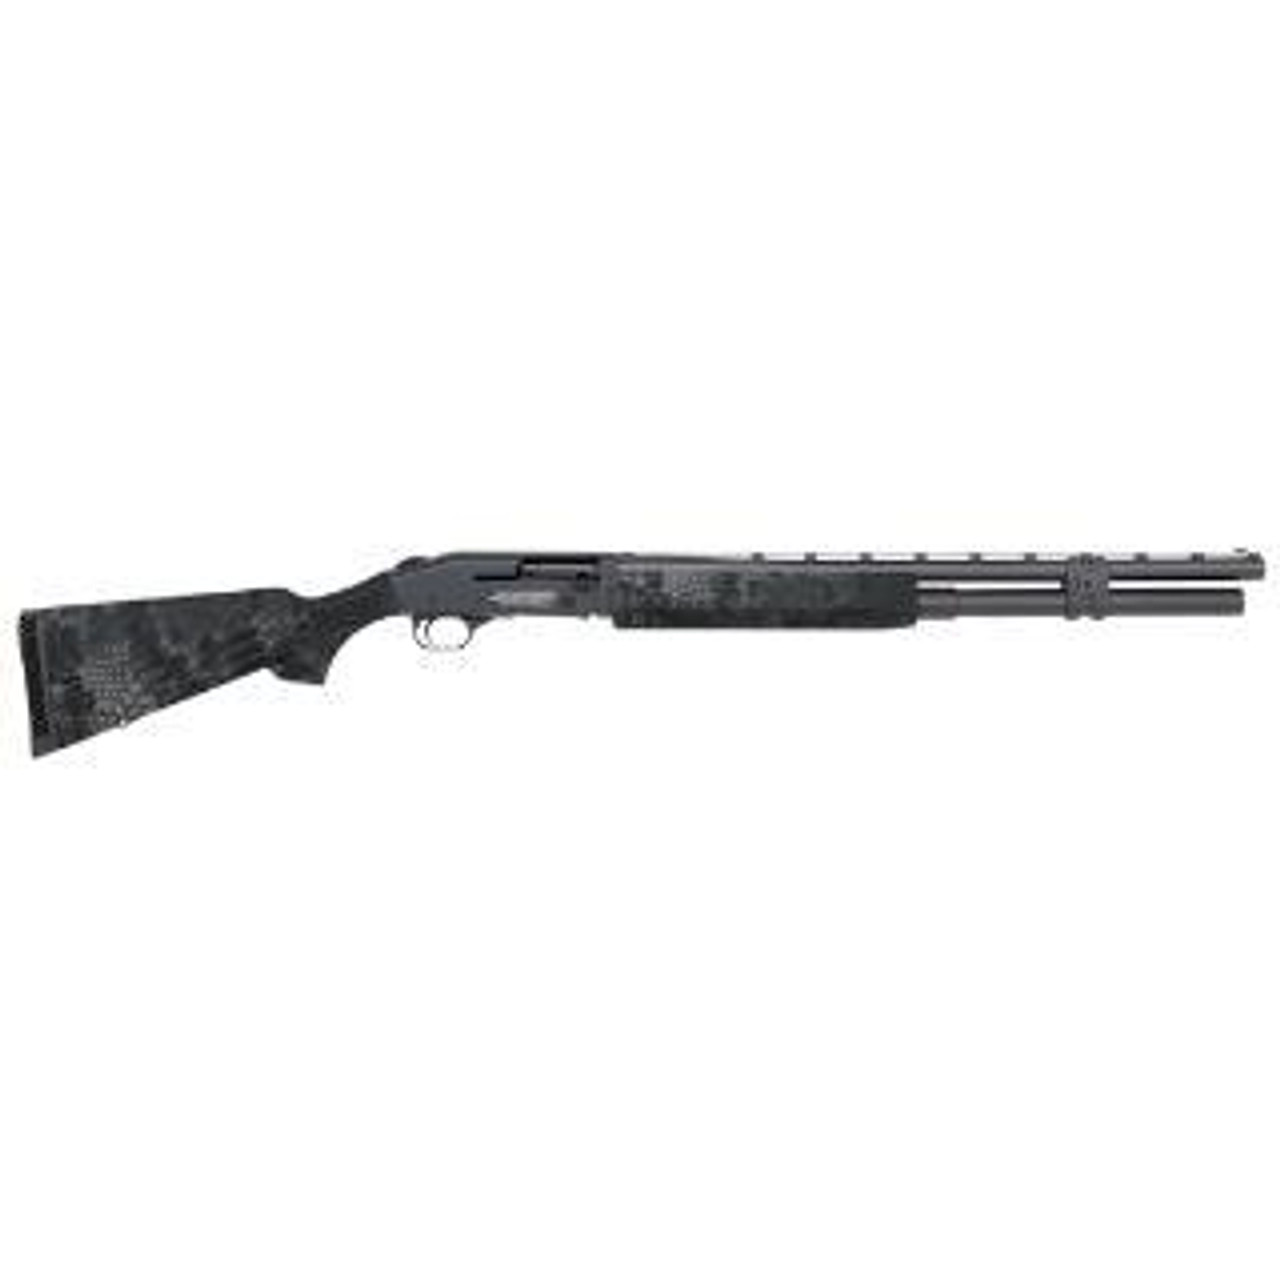 "Mossberg 930 JM Pro 24"" KRYPTEK TYPHON - California Legal"